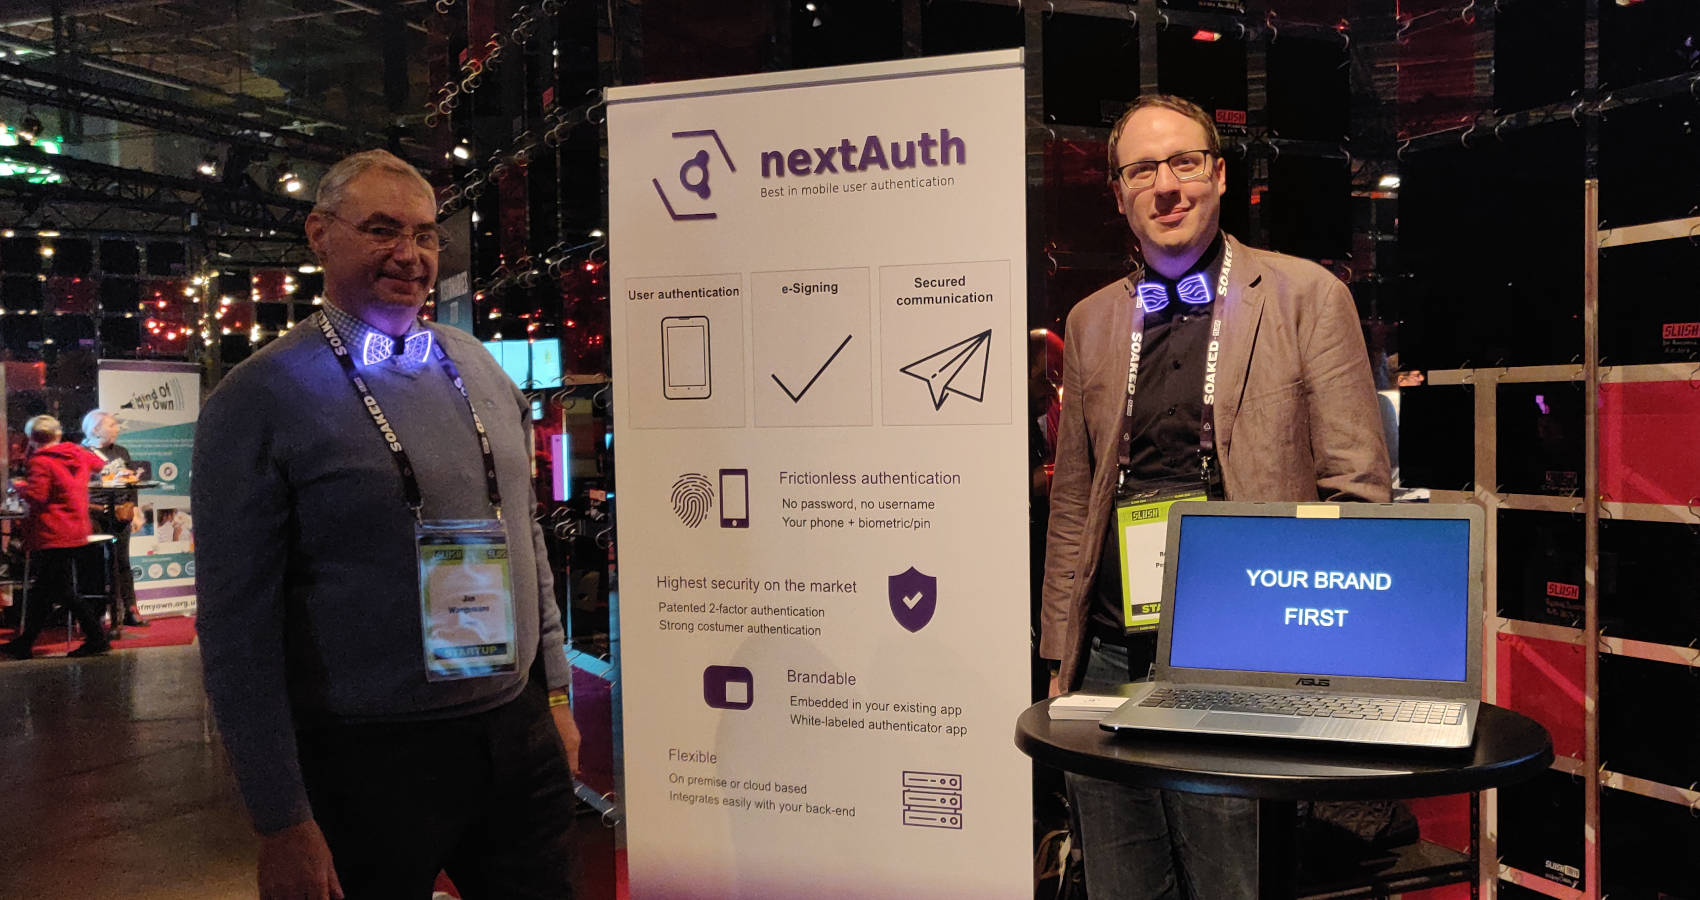 nextAuth at slush 2019